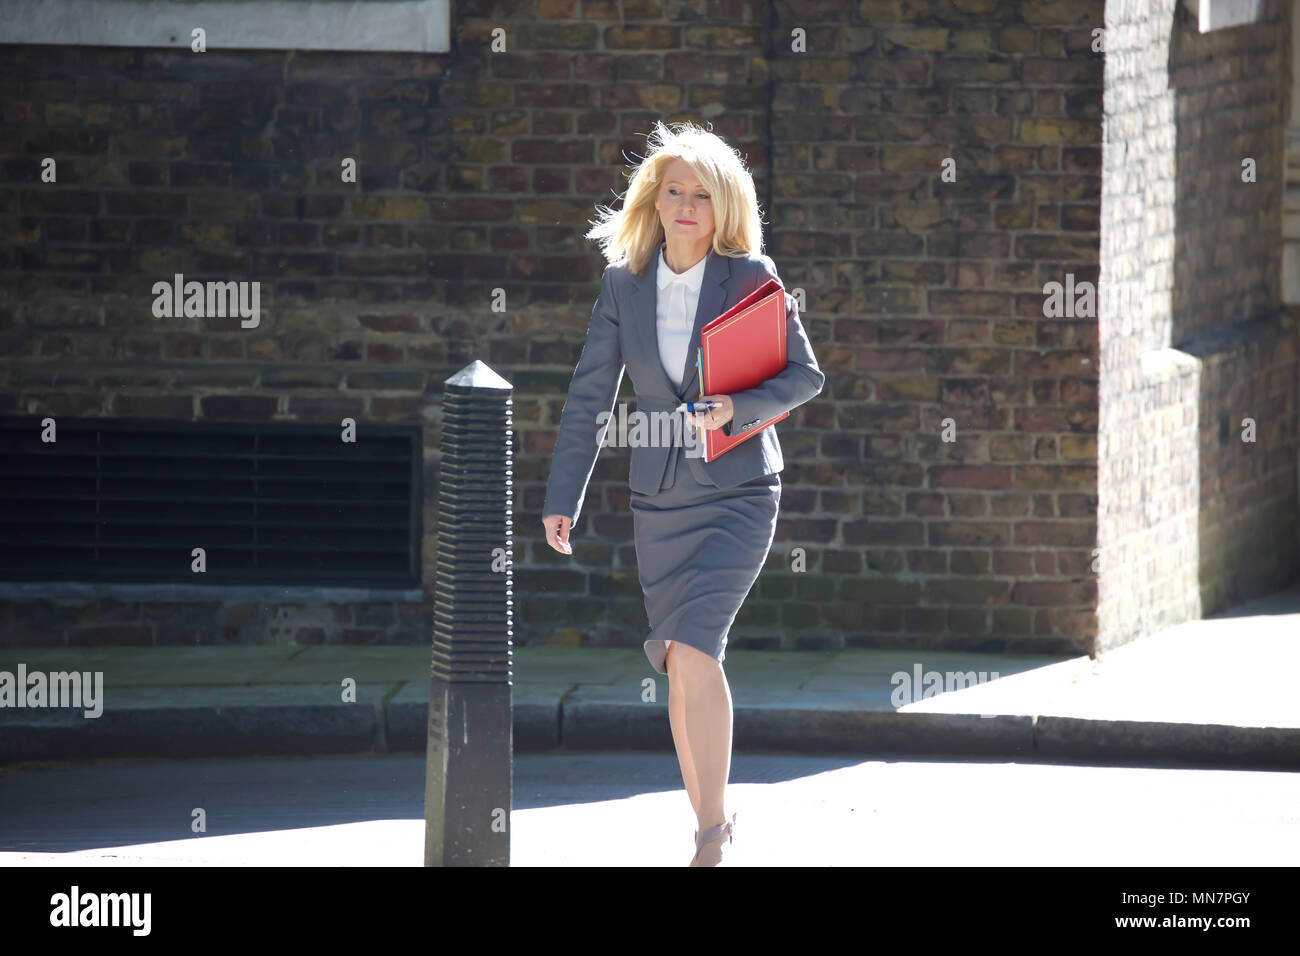 Esther Mcvey Mp High Resolution Stock Photography and